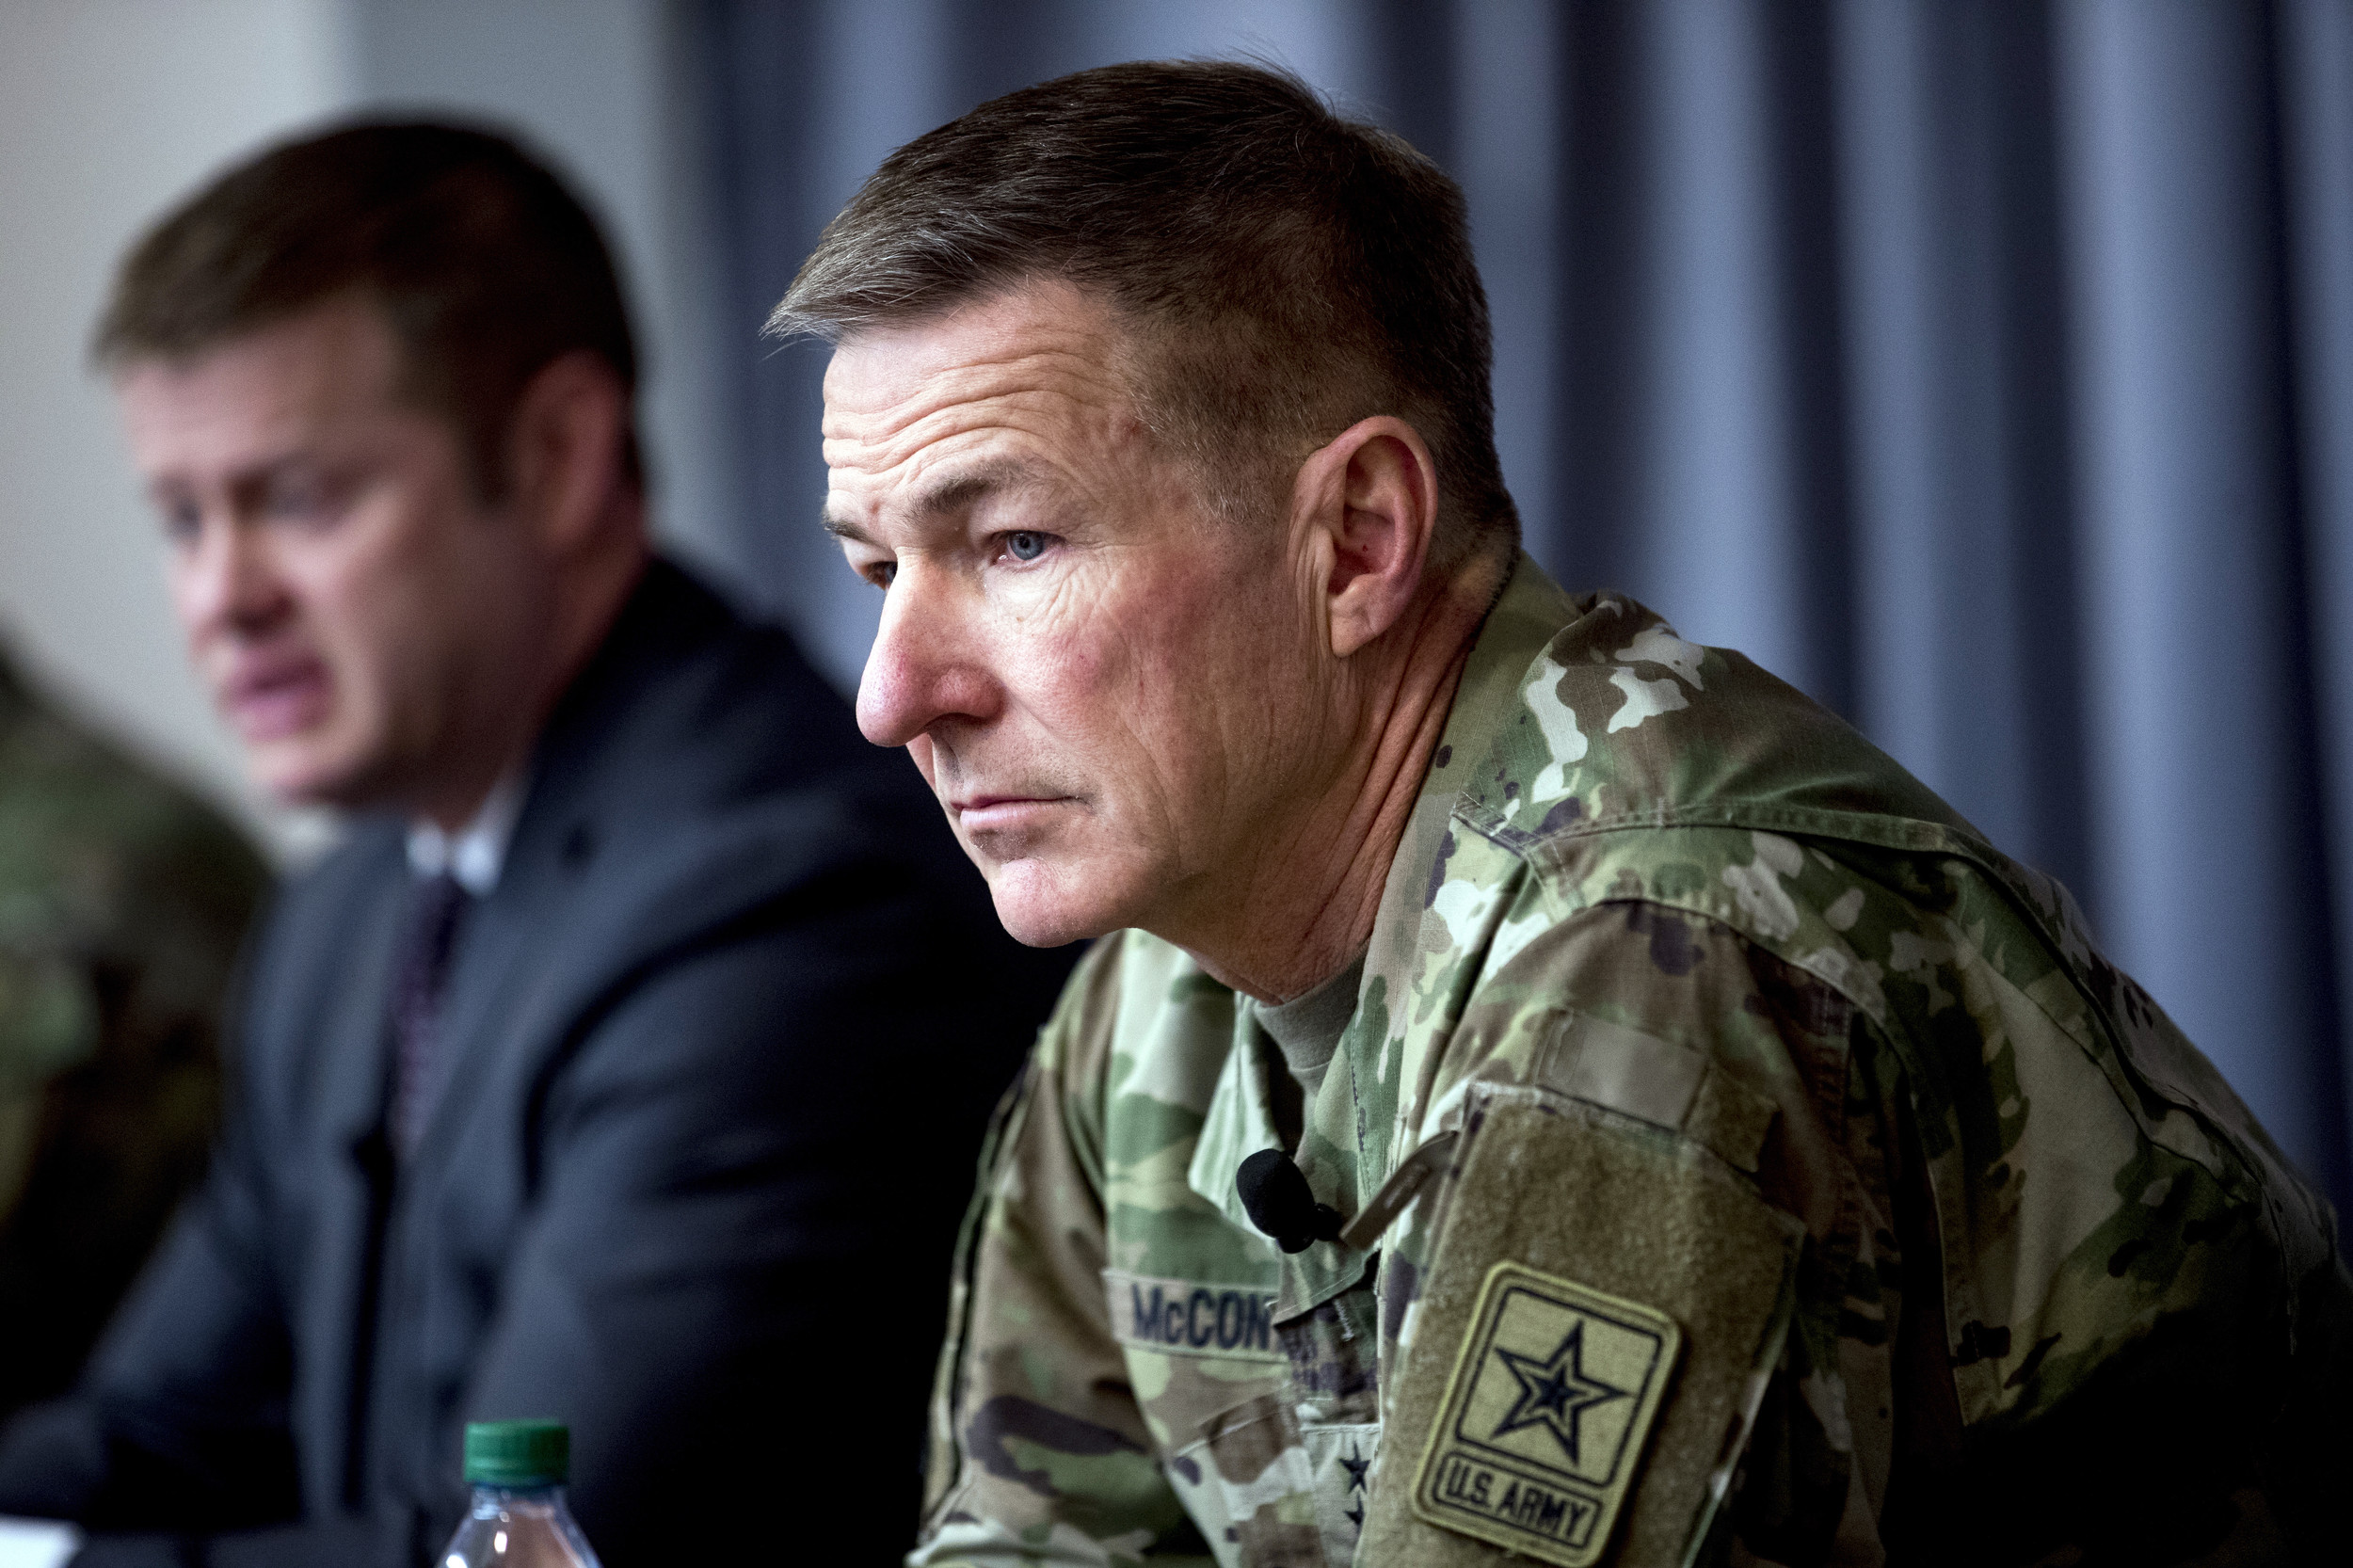 Army closing recruiting stations, moves effort online